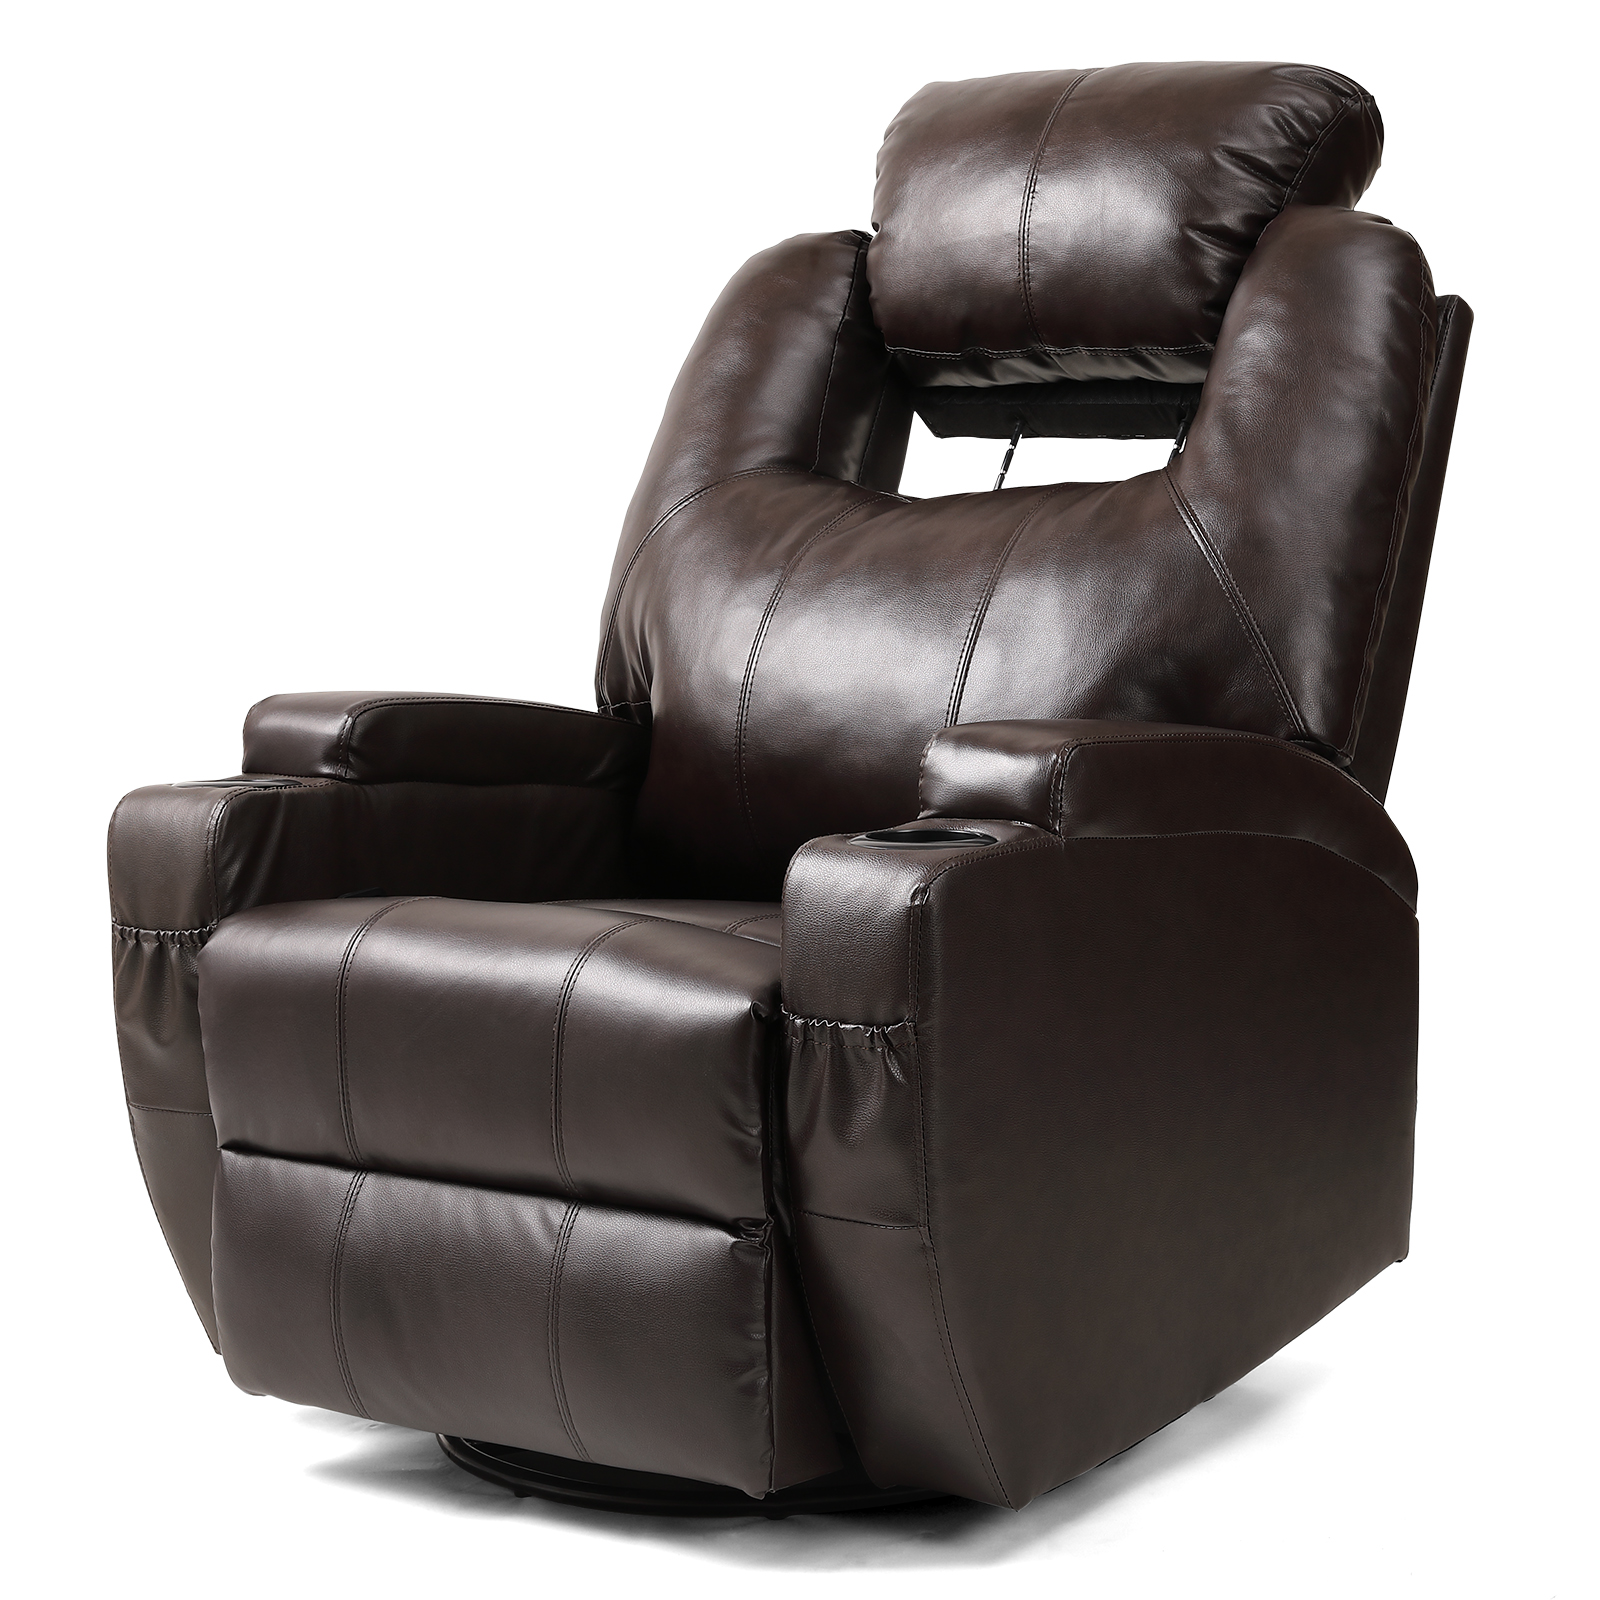 Remarkable Details About Full Body Electric Massage Chair Zero Gravity Recline Deluxe Heated Leather Sofa Unemploymentrelief Wooden Chair Designs For Living Room Unemploymentrelieforg